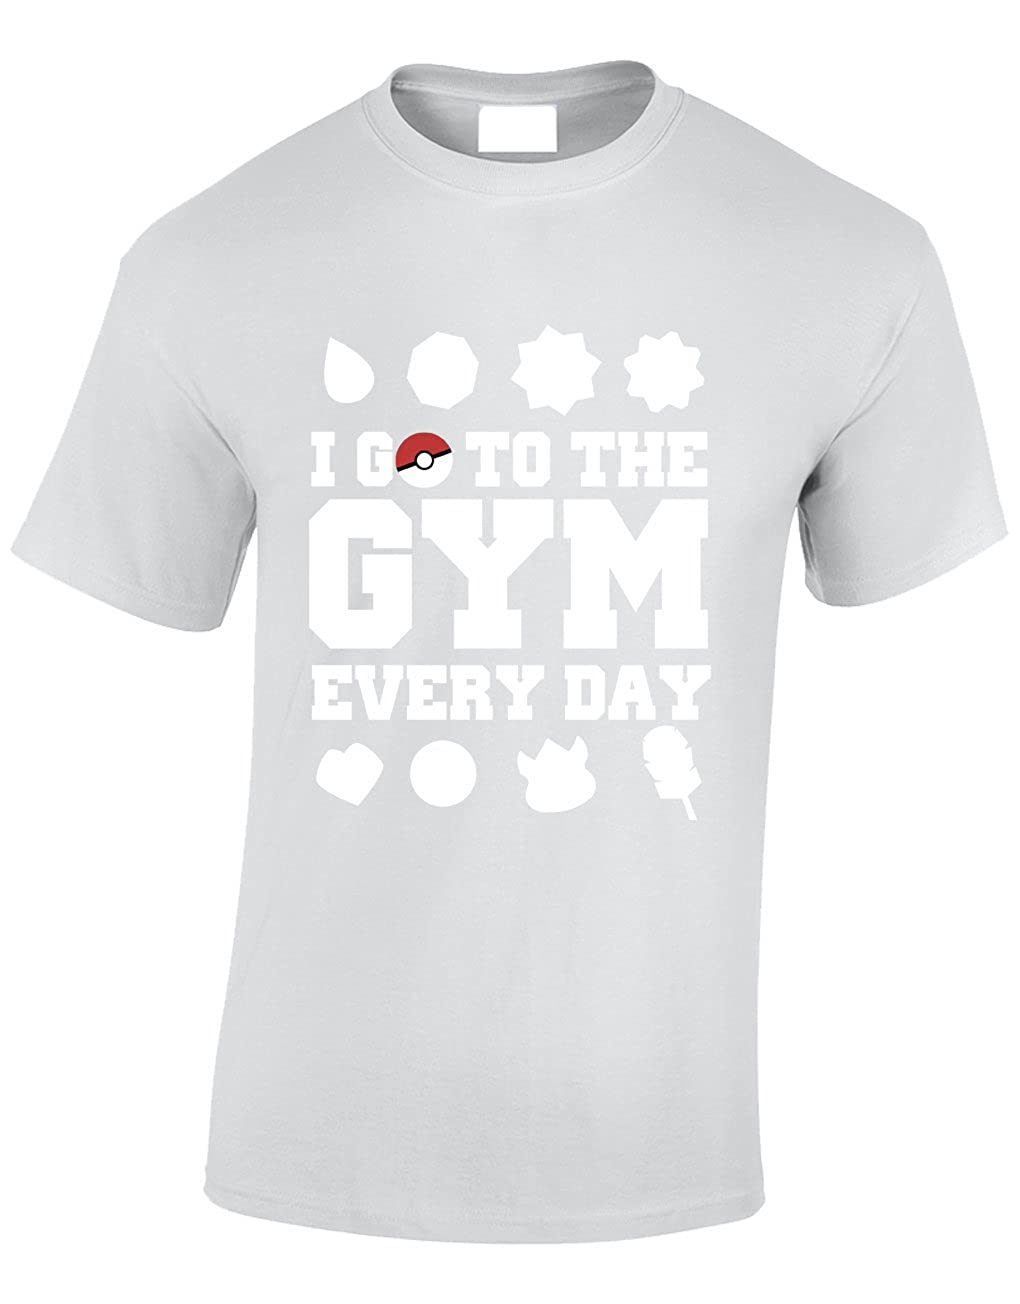 Pin on T shirts everyday